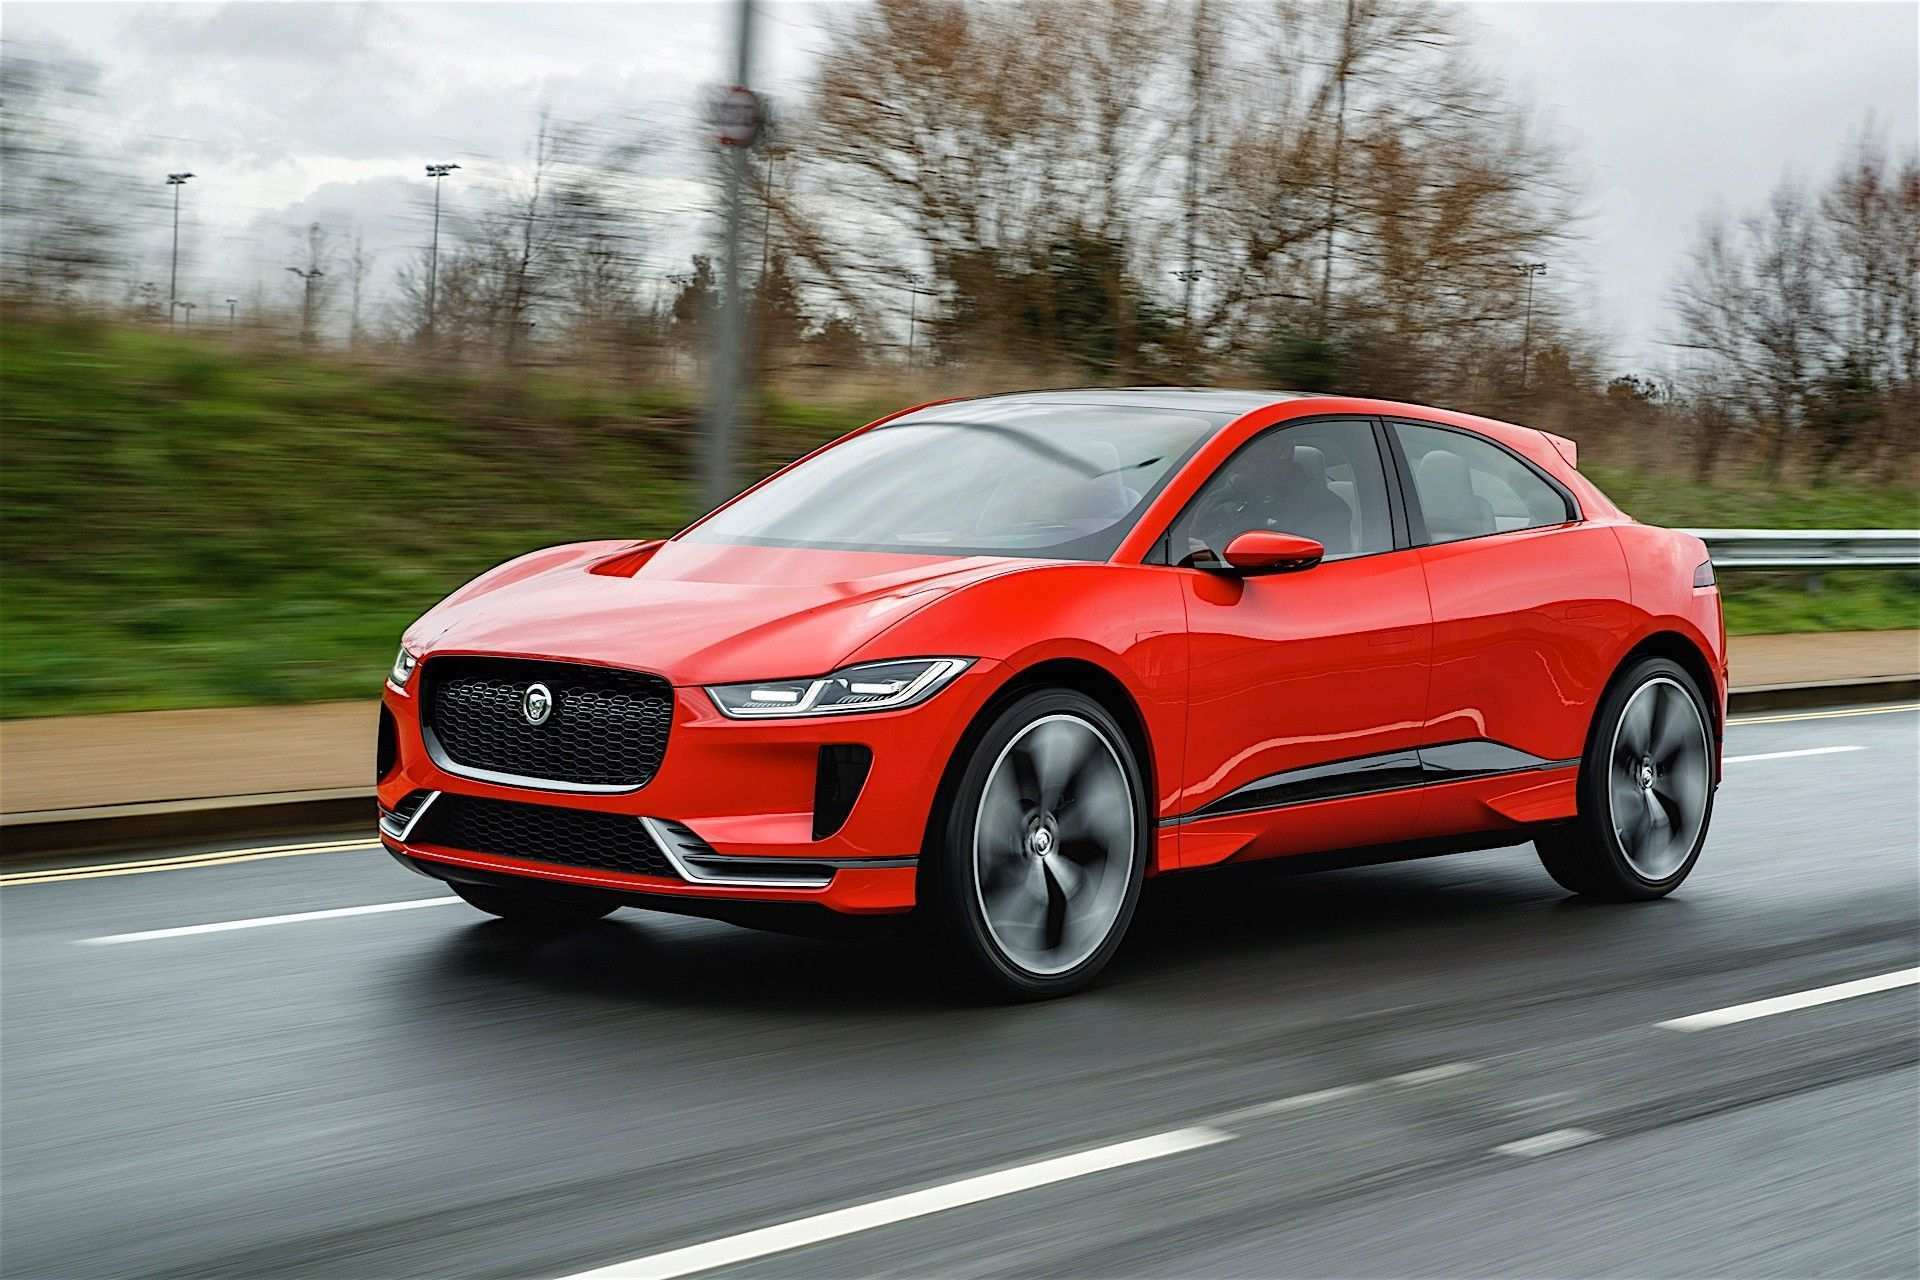 67 All New The Jaguar Electric 2019 Concept Performance with The Jaguar Electric 2019 Concept